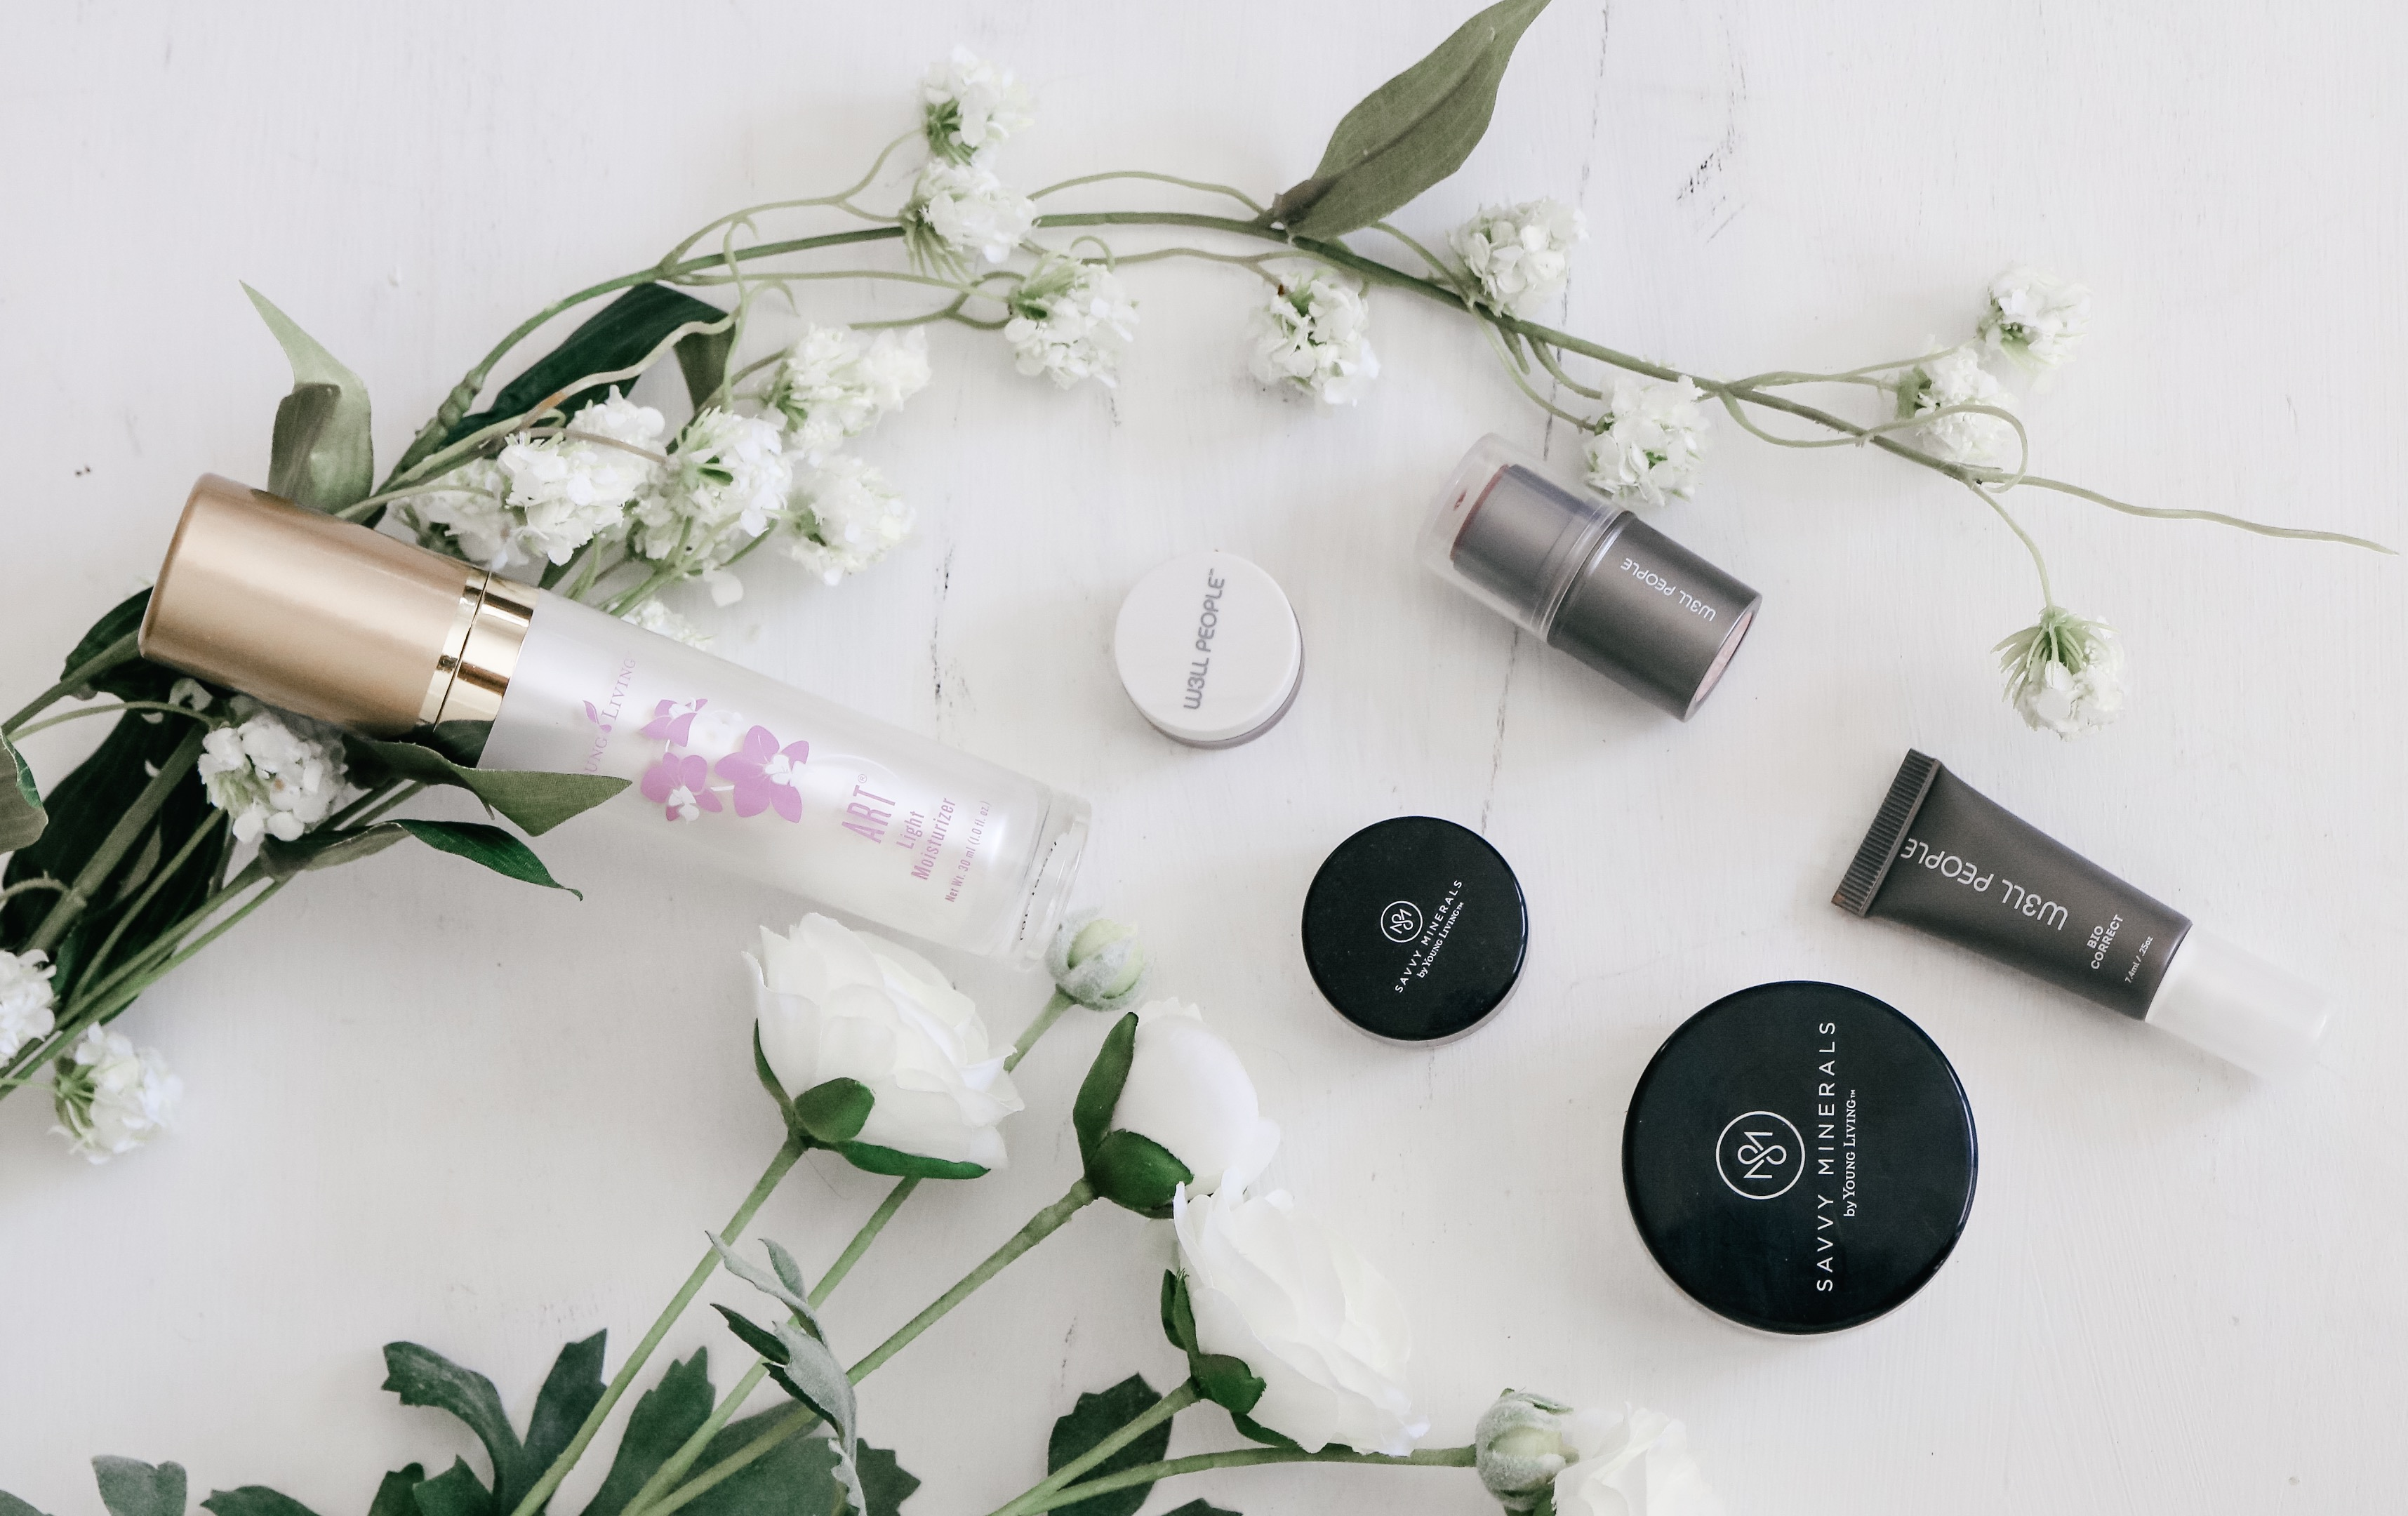 There are two important things I look for in my beauty routine. 1. Is this quick, simple, and effective and 2. are these products natural, safe and clean?